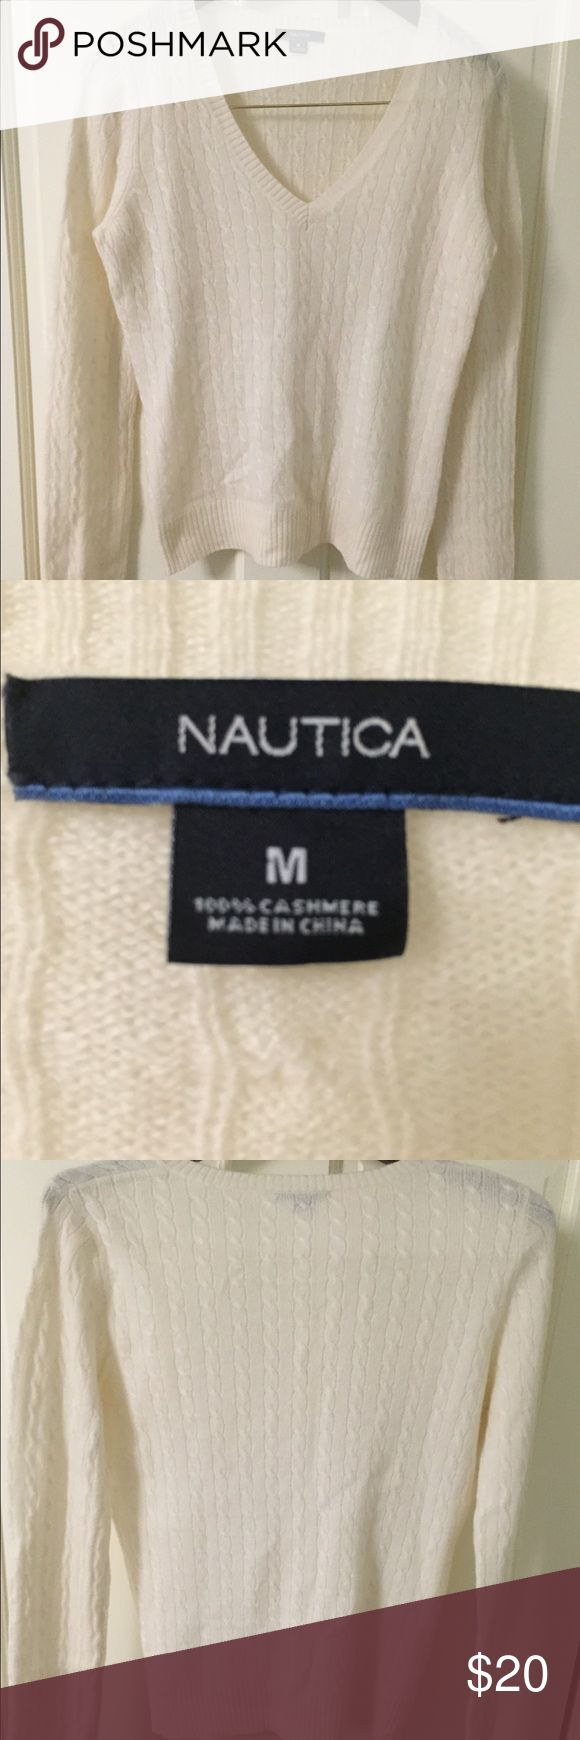 Nautica Cashmere V-neck sweater 100%cashmere v-neck sweater. Perfect for work, holidays and going out! Classic staple in your closet. worn twice, small pulling under arms. Have not tried to remove it. FAST SHIP! Nautica Sweaters V-Necks